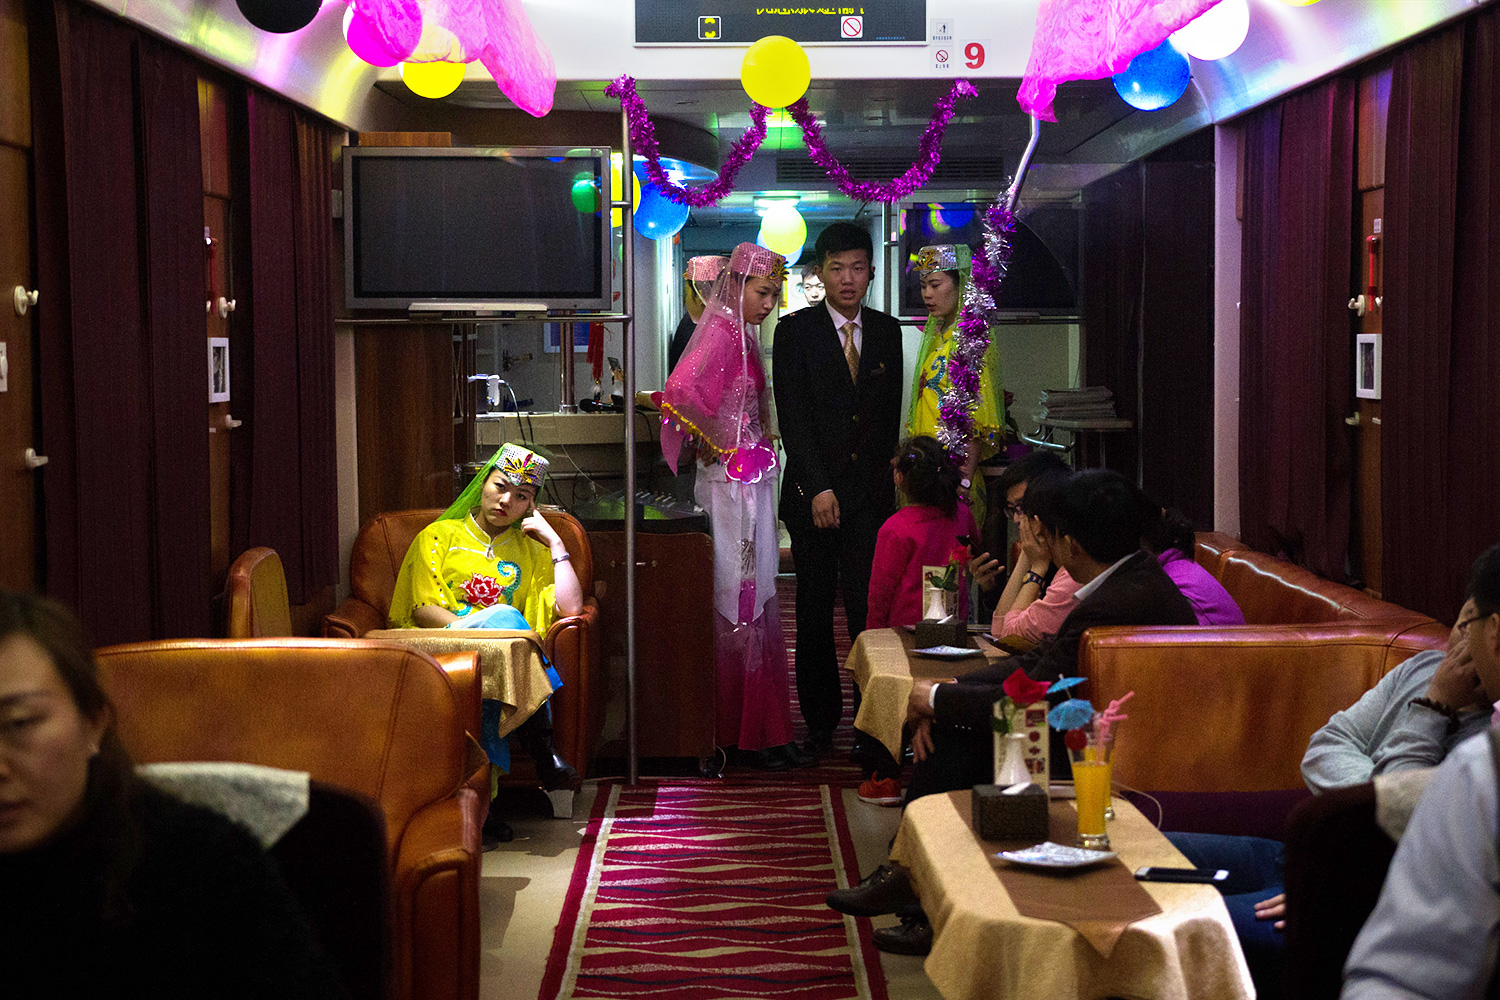 Railway staff dressed in traditional Hui-style outfits wait to perform a dance for the passengers in the dining car of a train bound for the autonomous region of Ningxia.